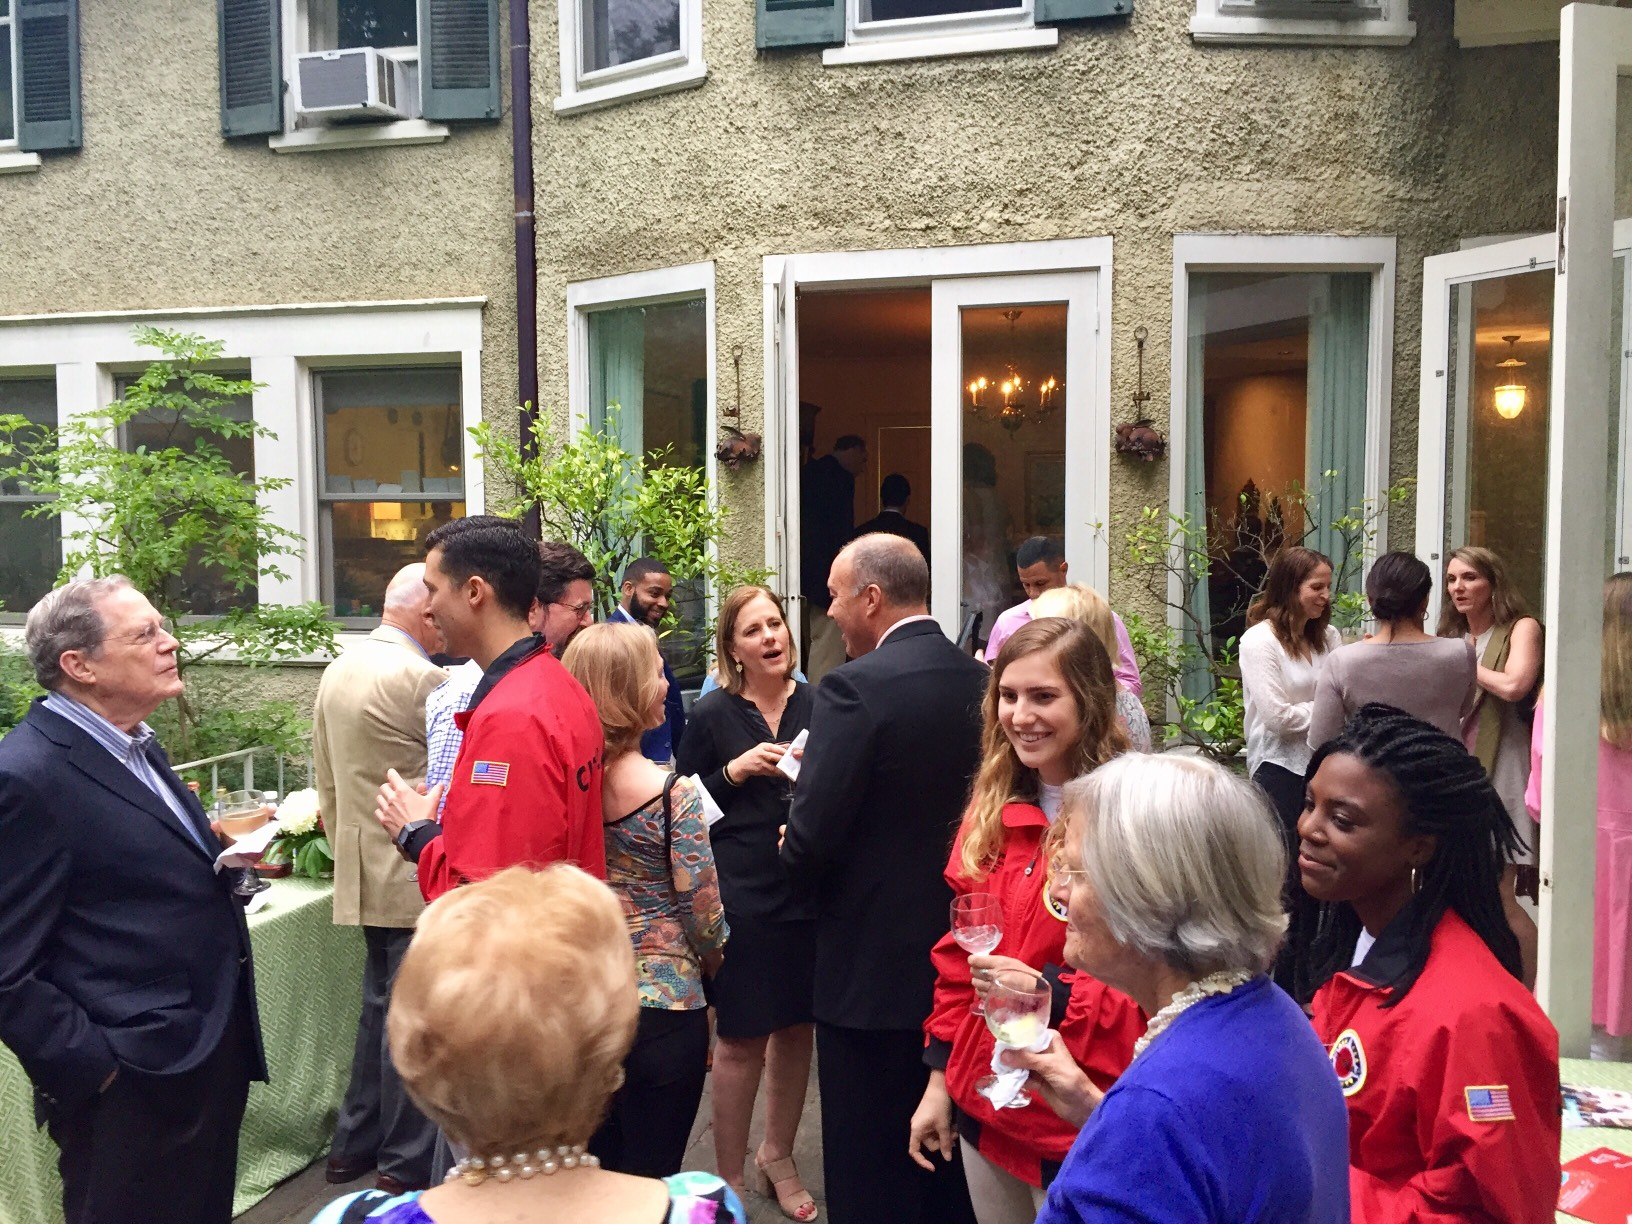 Guests and AmeriCorps members mingle during the event